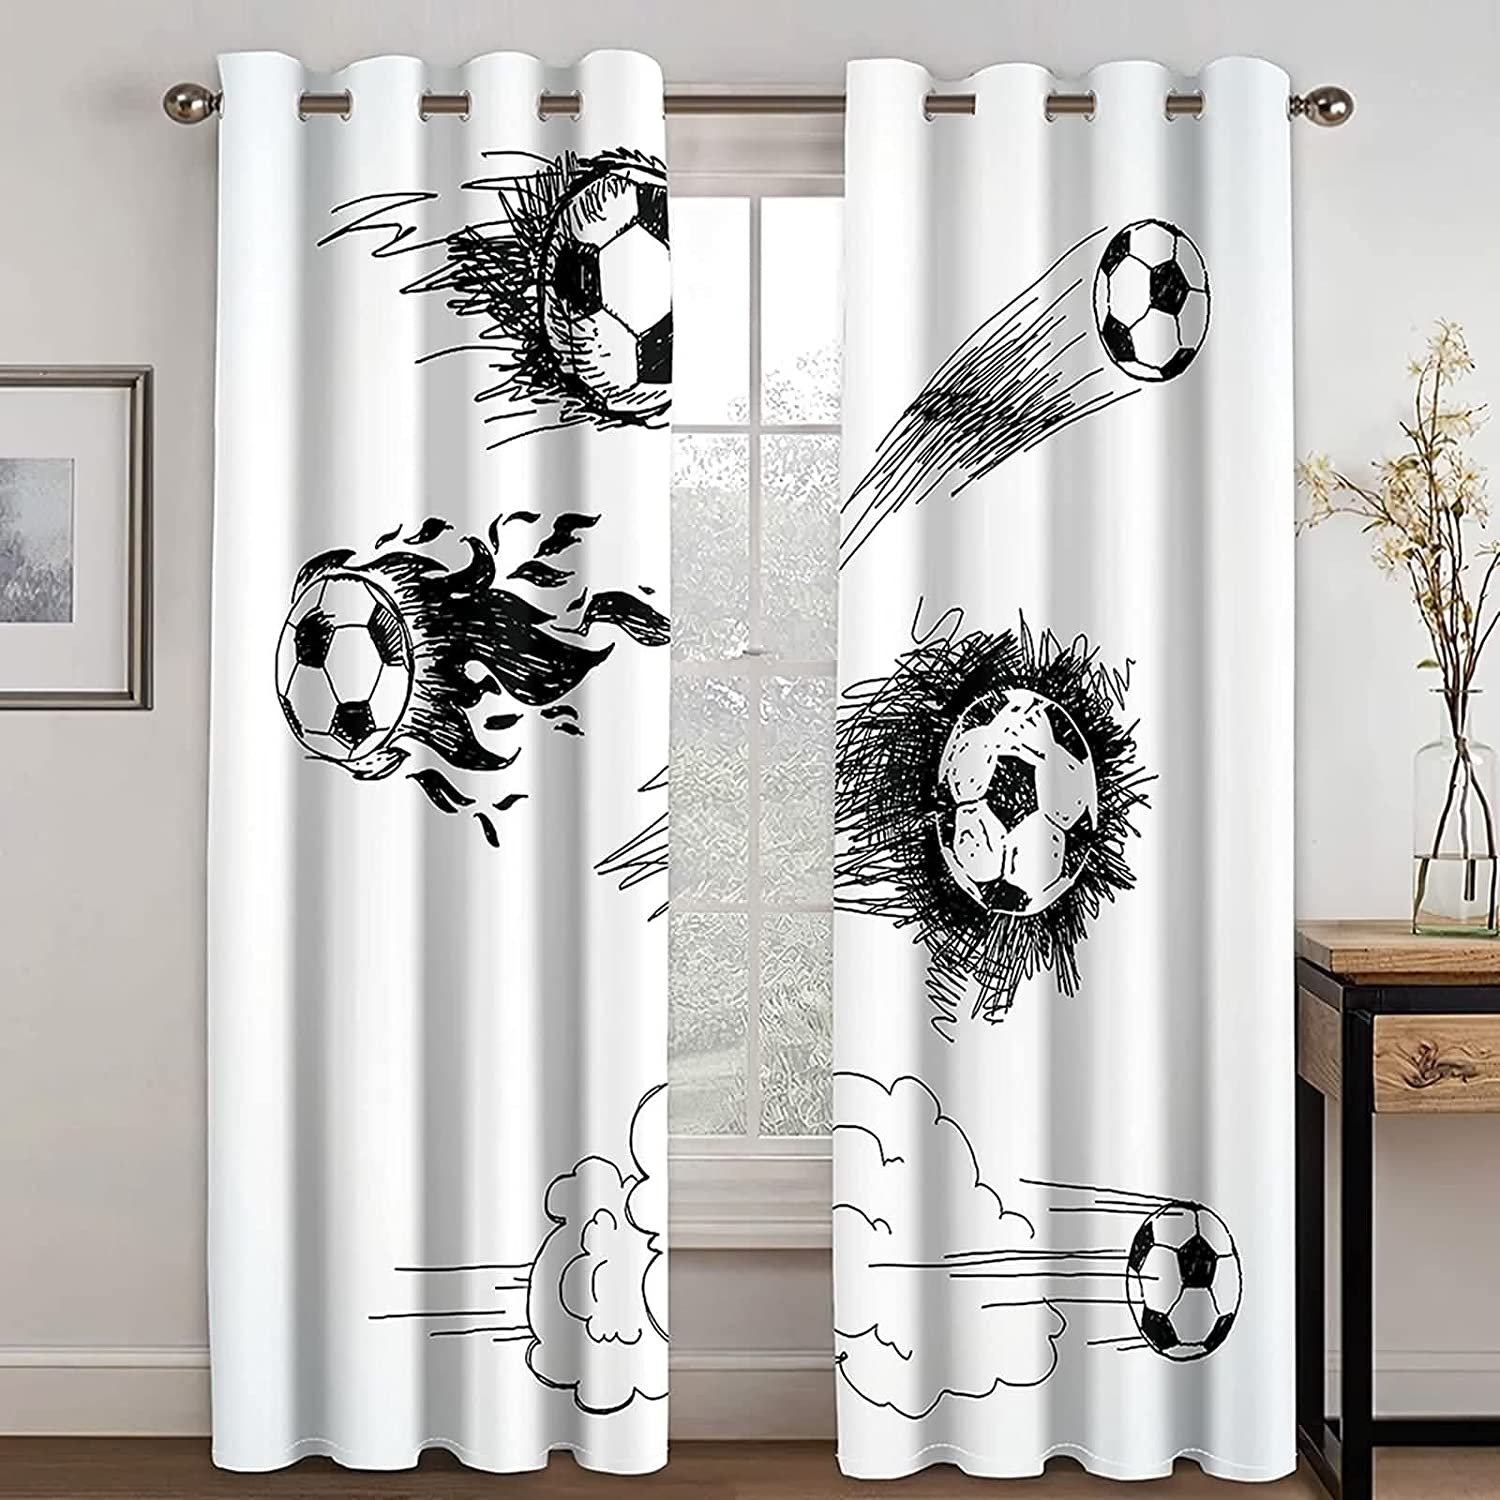 Aooaz Outdoor Curtains Polyester 2021 2 Large special price !! Panels Curtain 98% Blackout